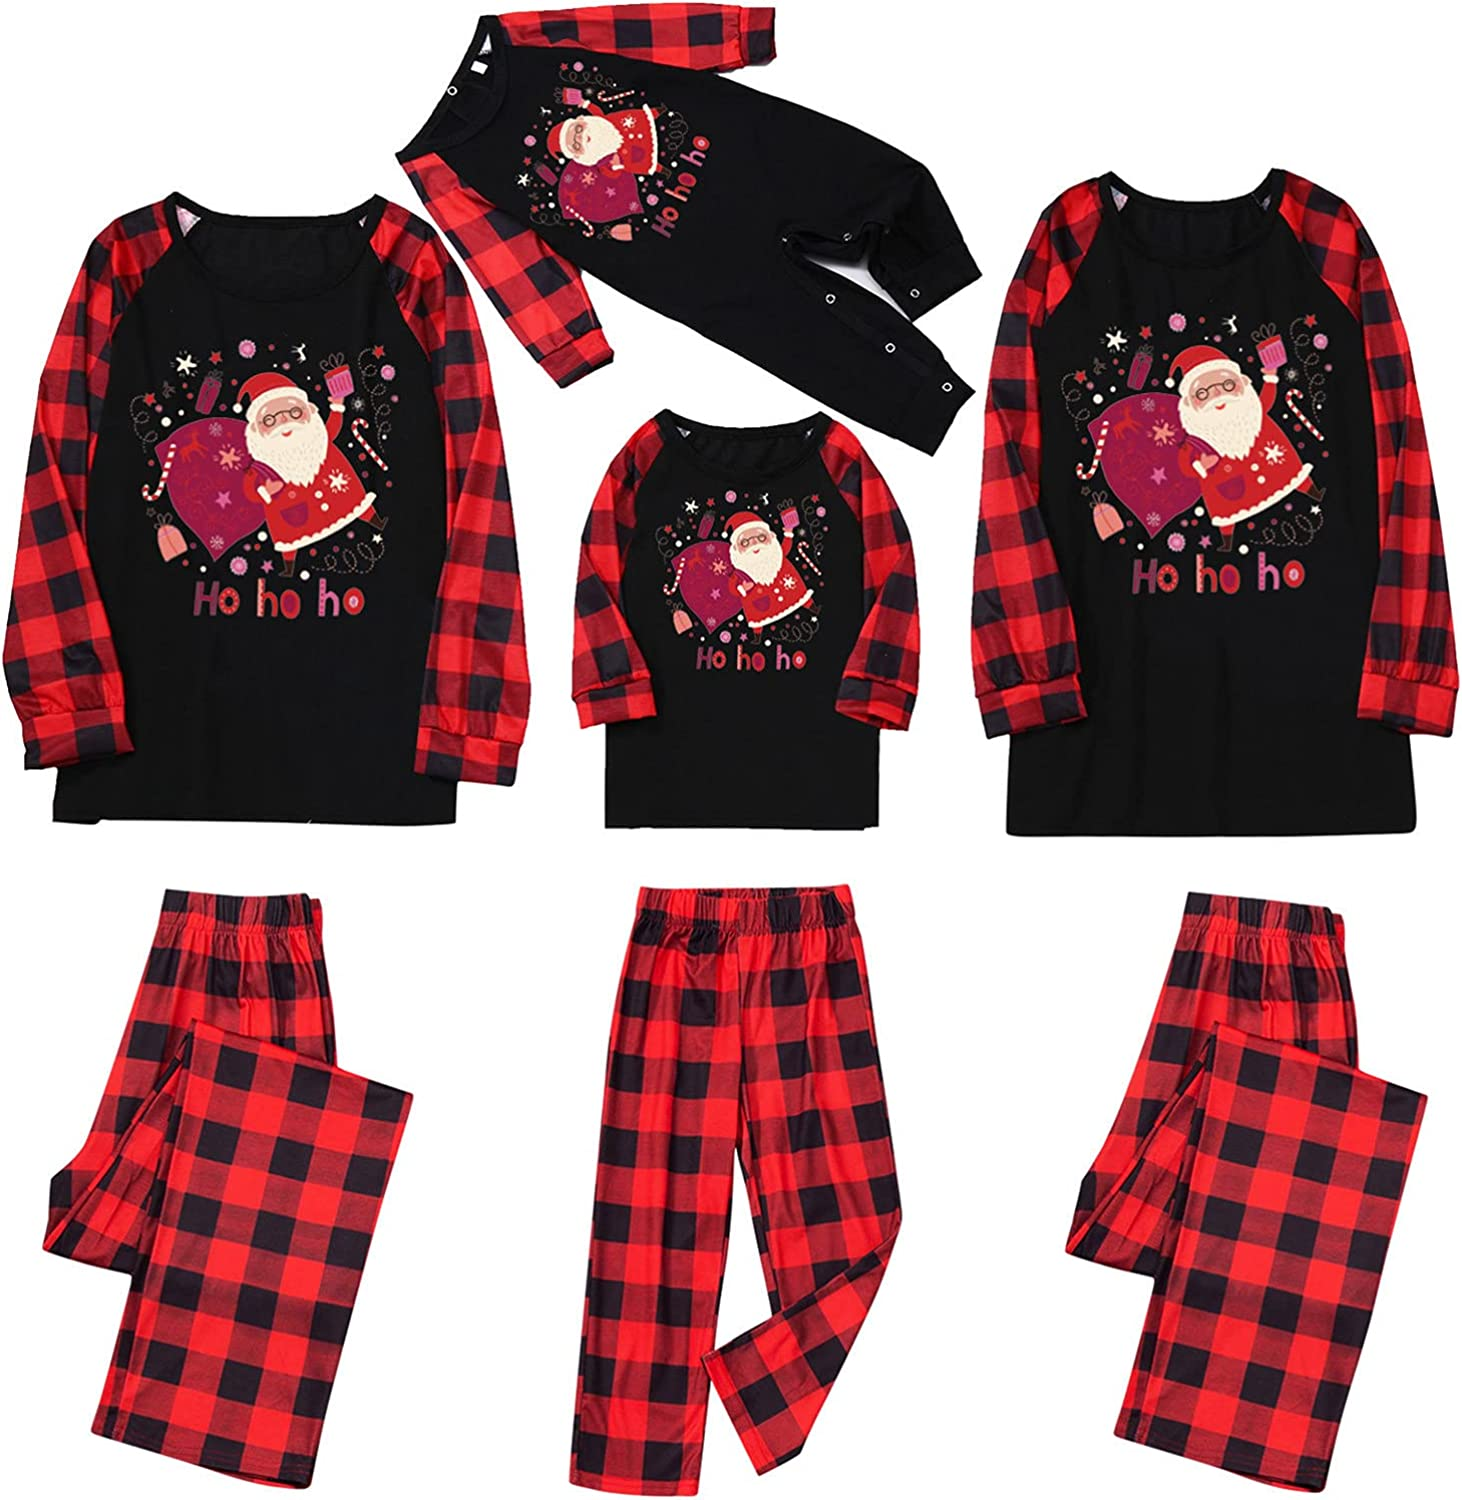 Holiday Family Matching Pajamas Cotton Blend Pjs Set Sleepwears Long Sleeve Tops Jumpsuit Pant Set Household Outfits